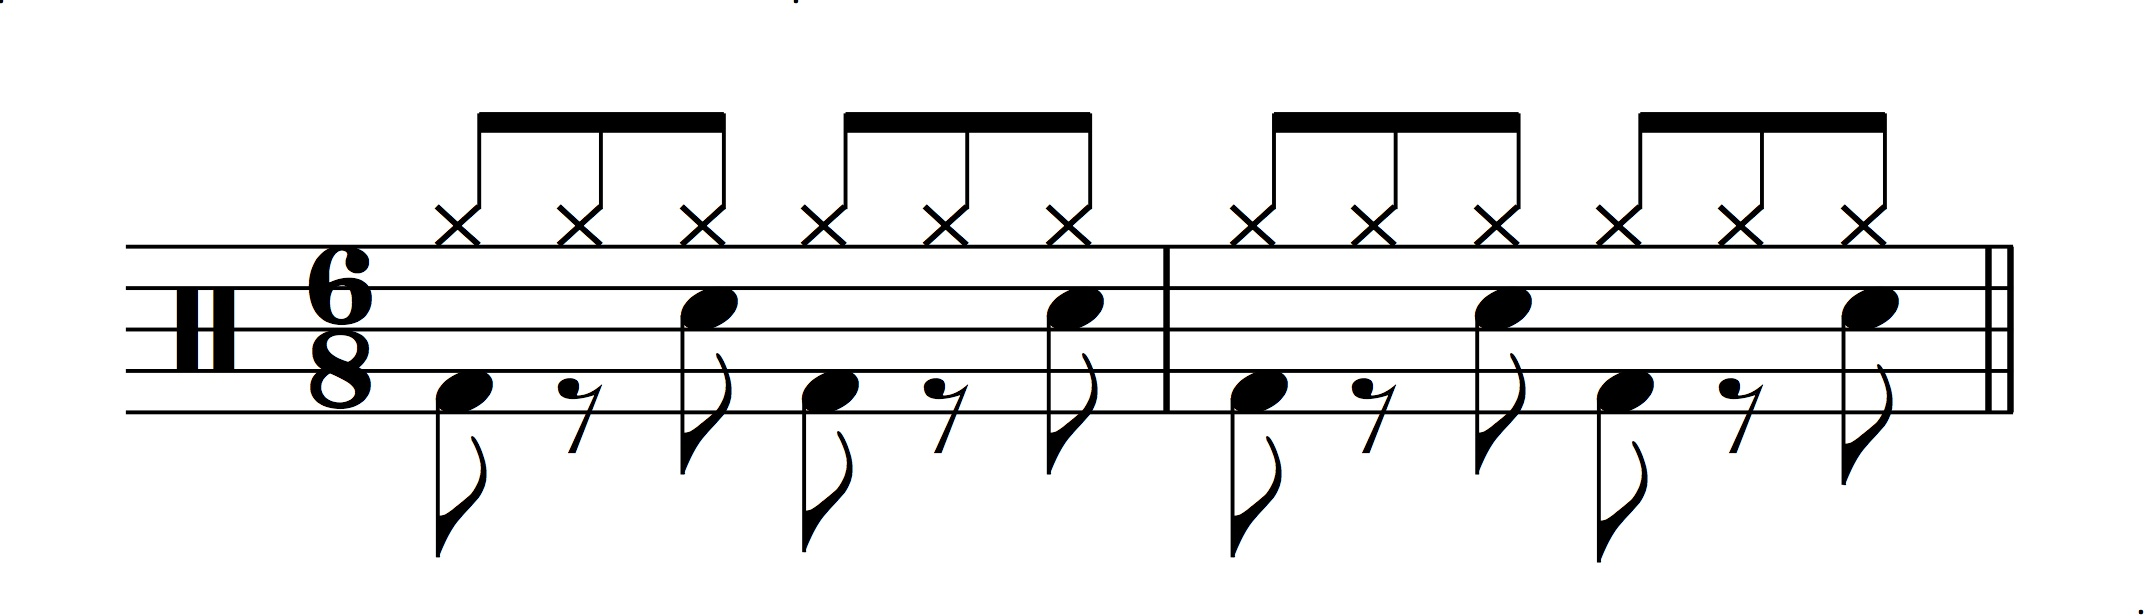 Figure 15.: Double-time drum feel in 6/8.